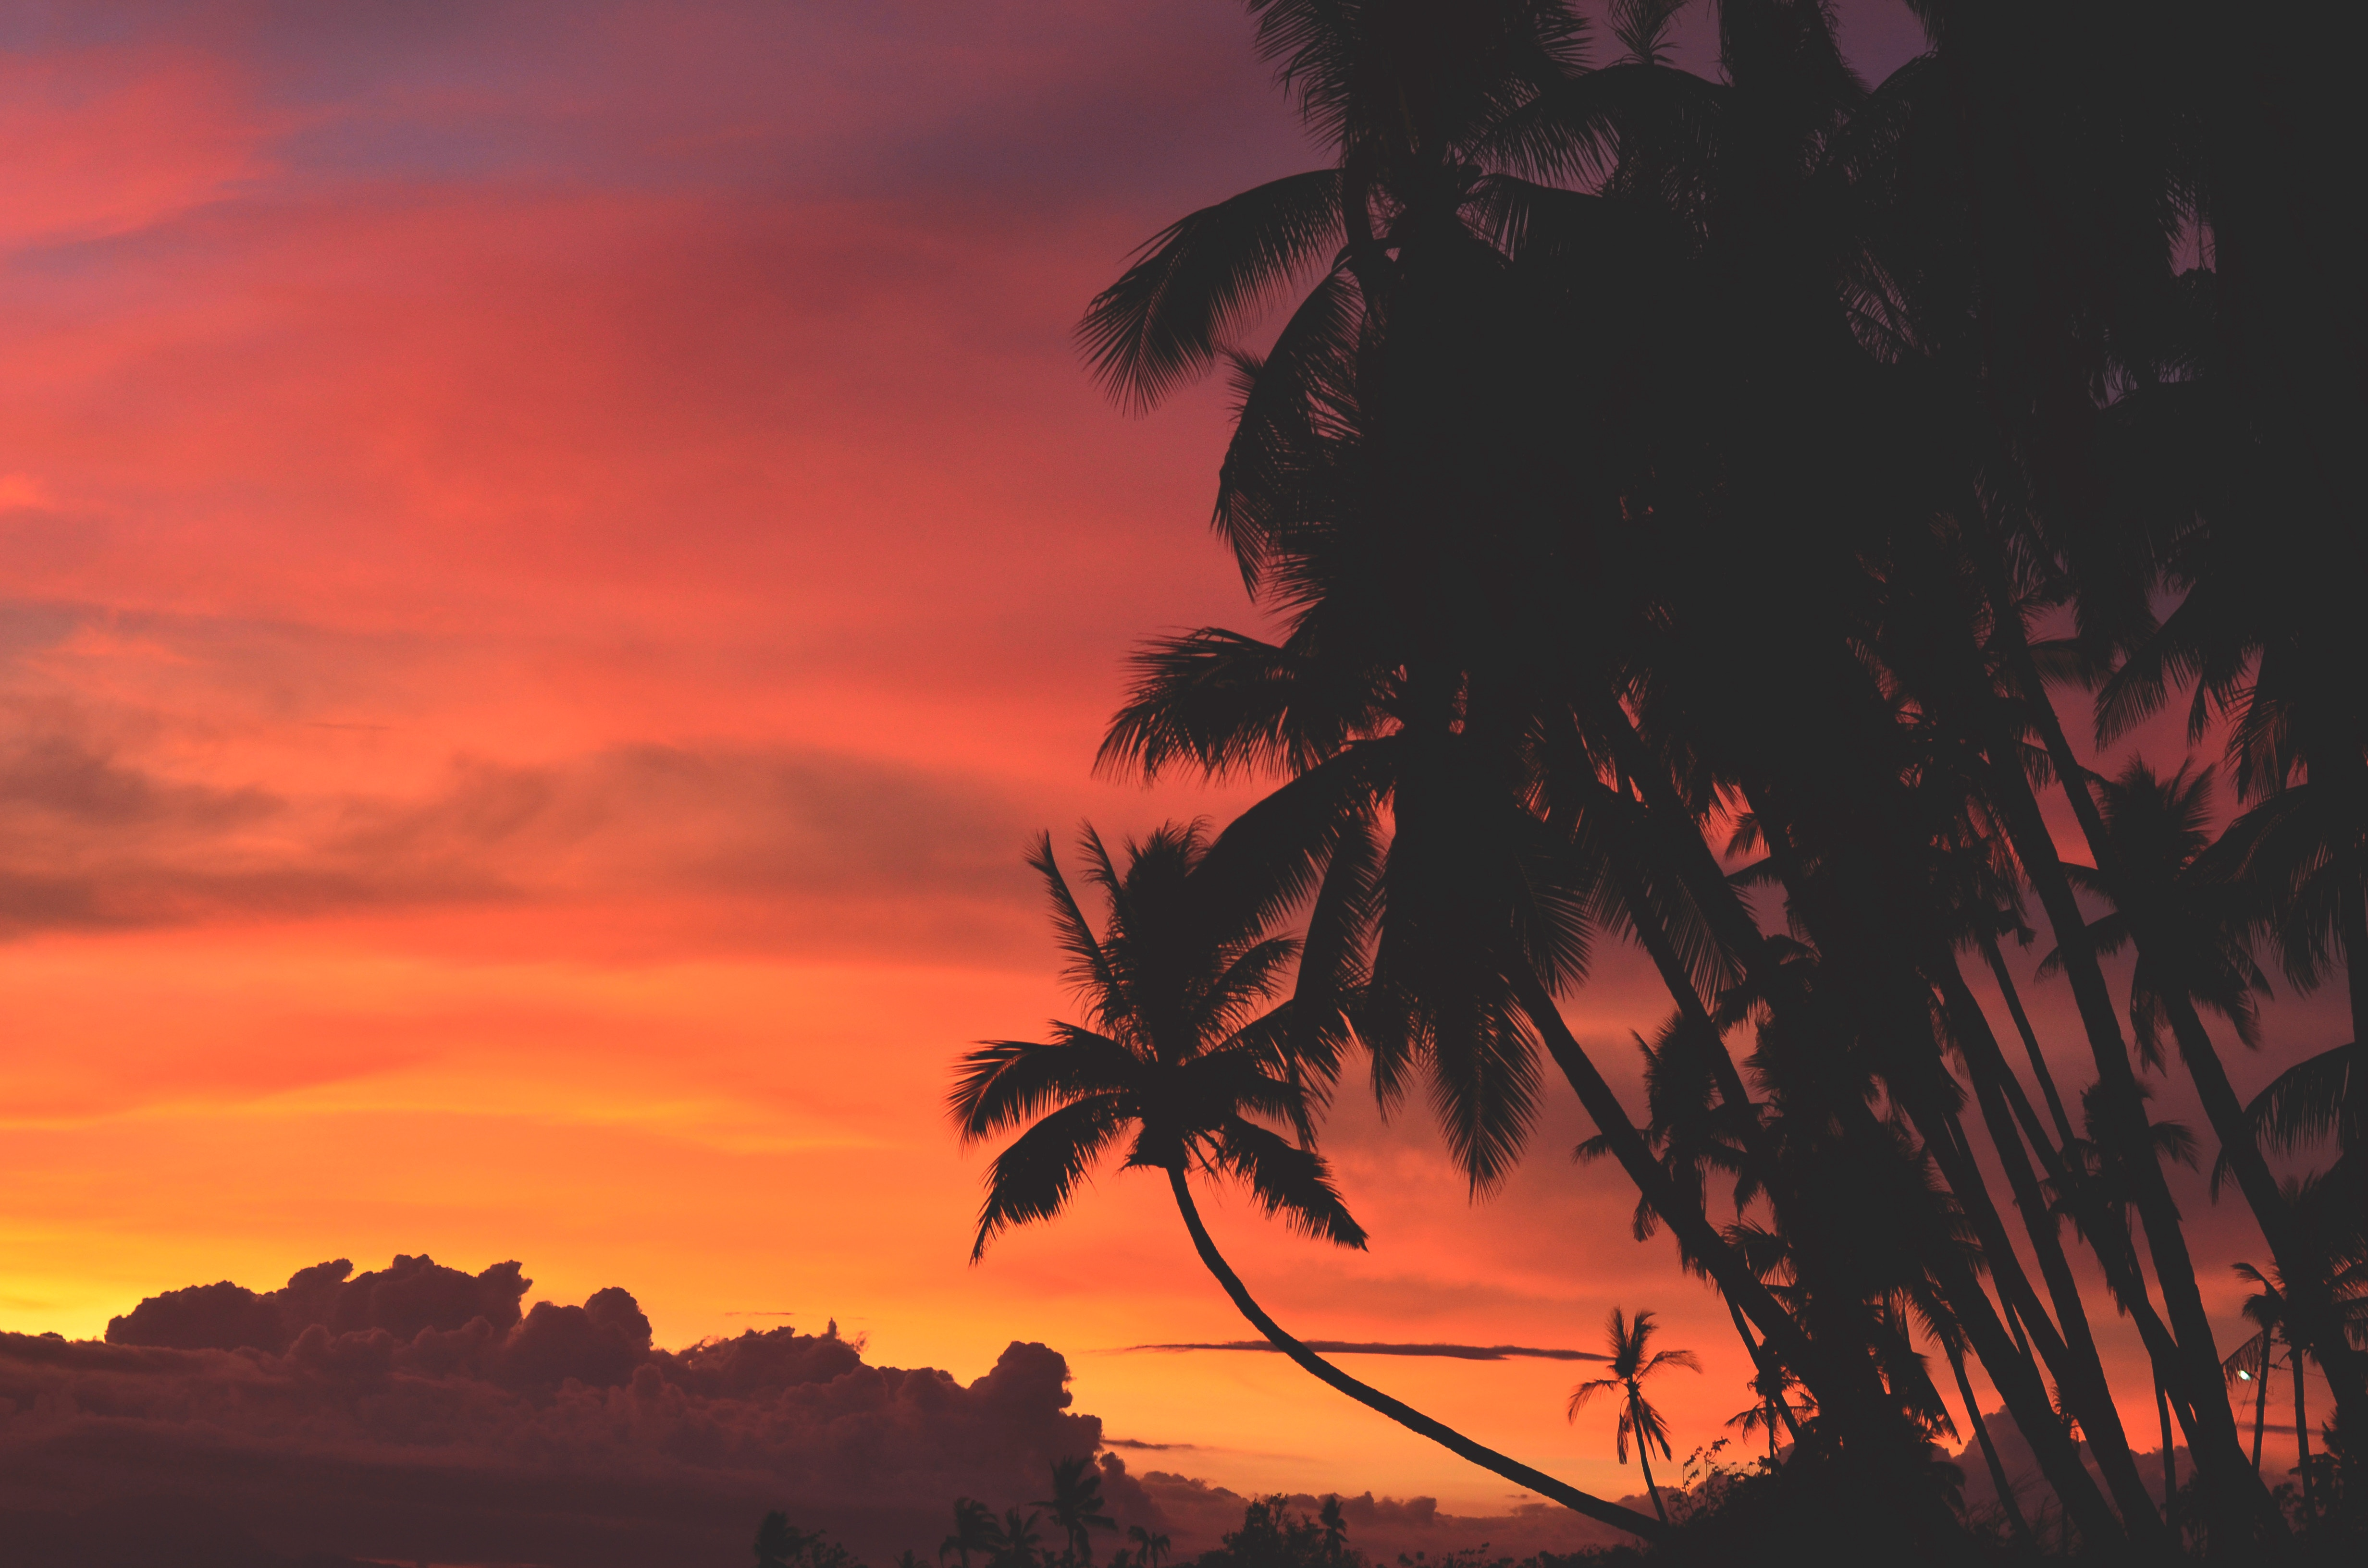 147287 download wallpaper Nature, Sunset, Clouds, Tropics, Sky, Palms screensavers and pictures for free